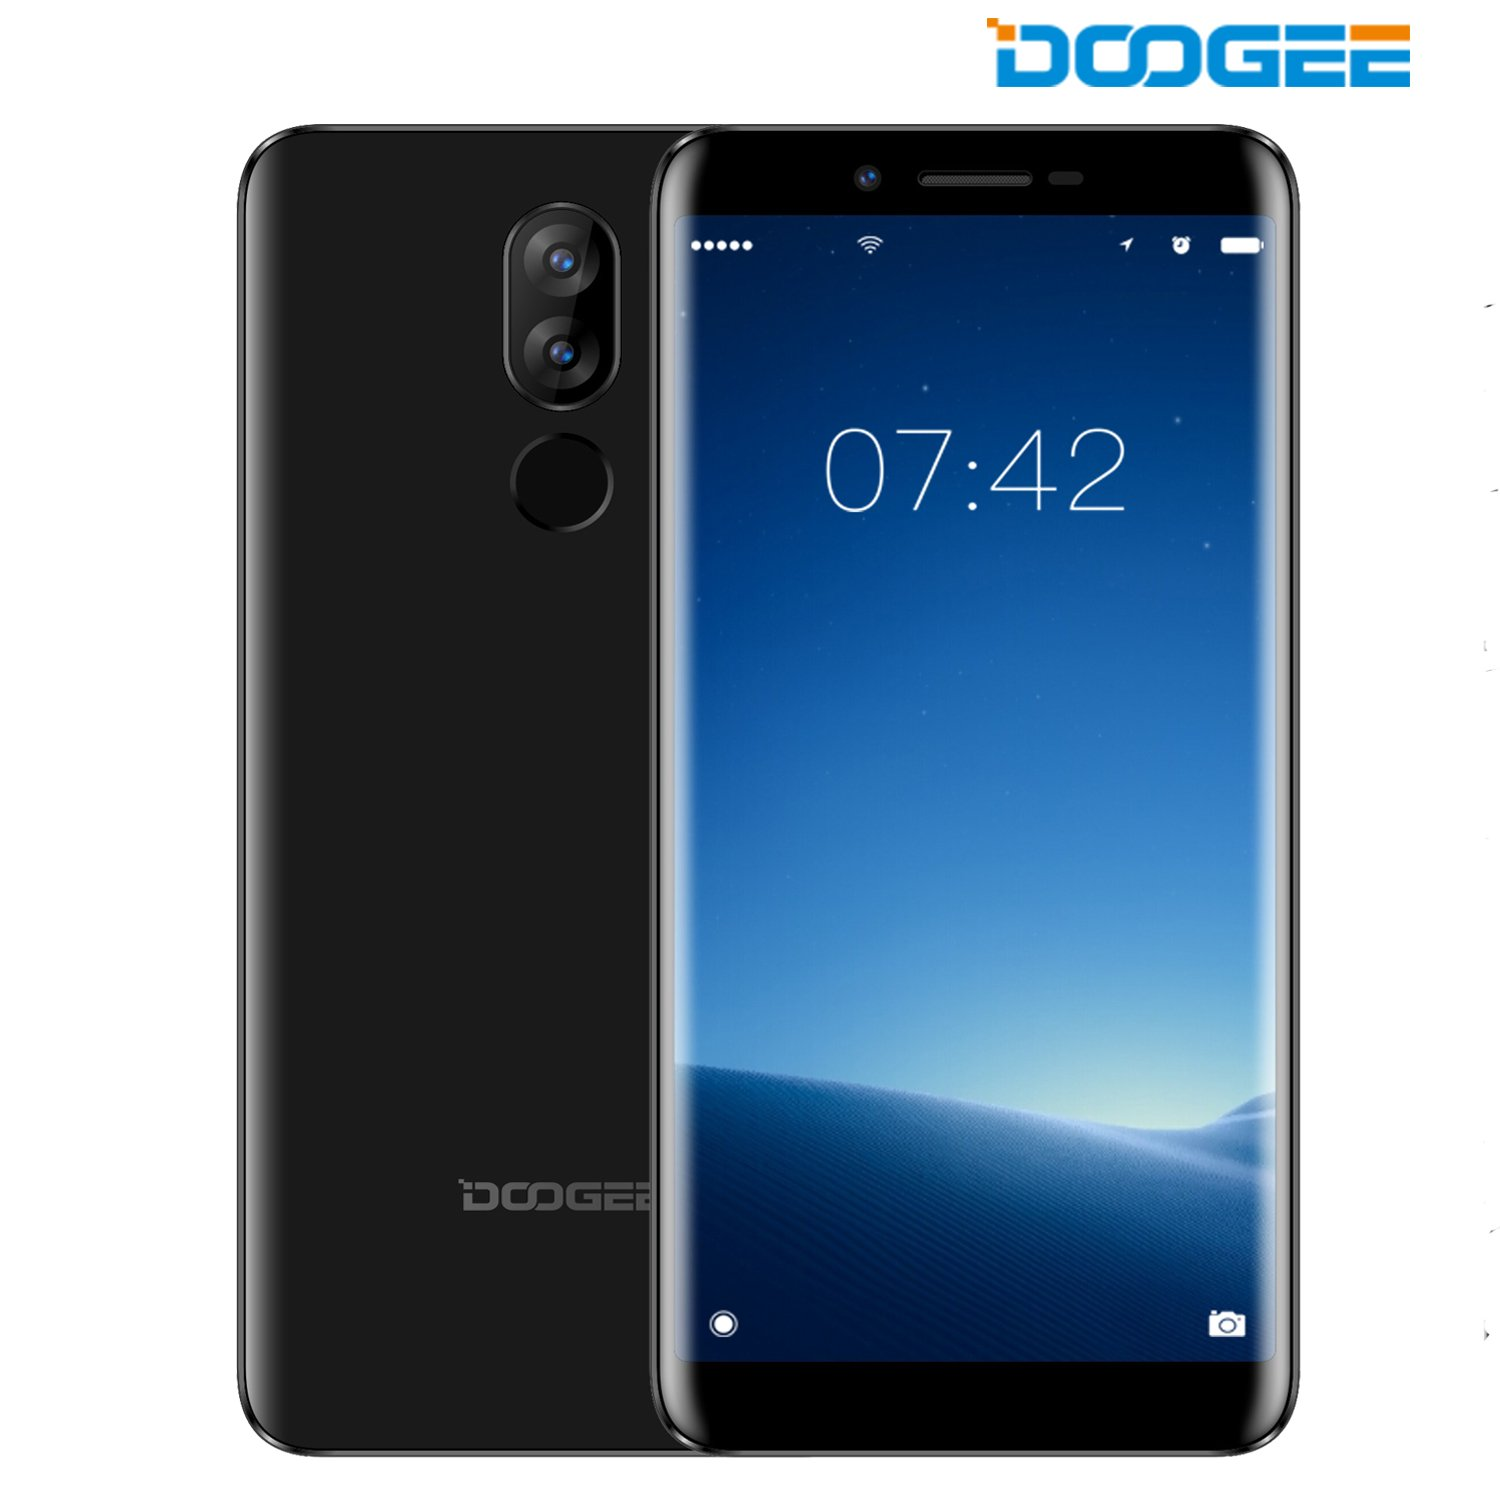 DOOGEE X60L 4G Unlocked Cell Phone Android - 5.5'' Screen - 16GB ROM + 128GB Expandable Storage - 13MP + 8MP Dual-Lens Camera - 3300mAh Battery Fingerprint ID Unlocked Dual SIM Smartphone - Black